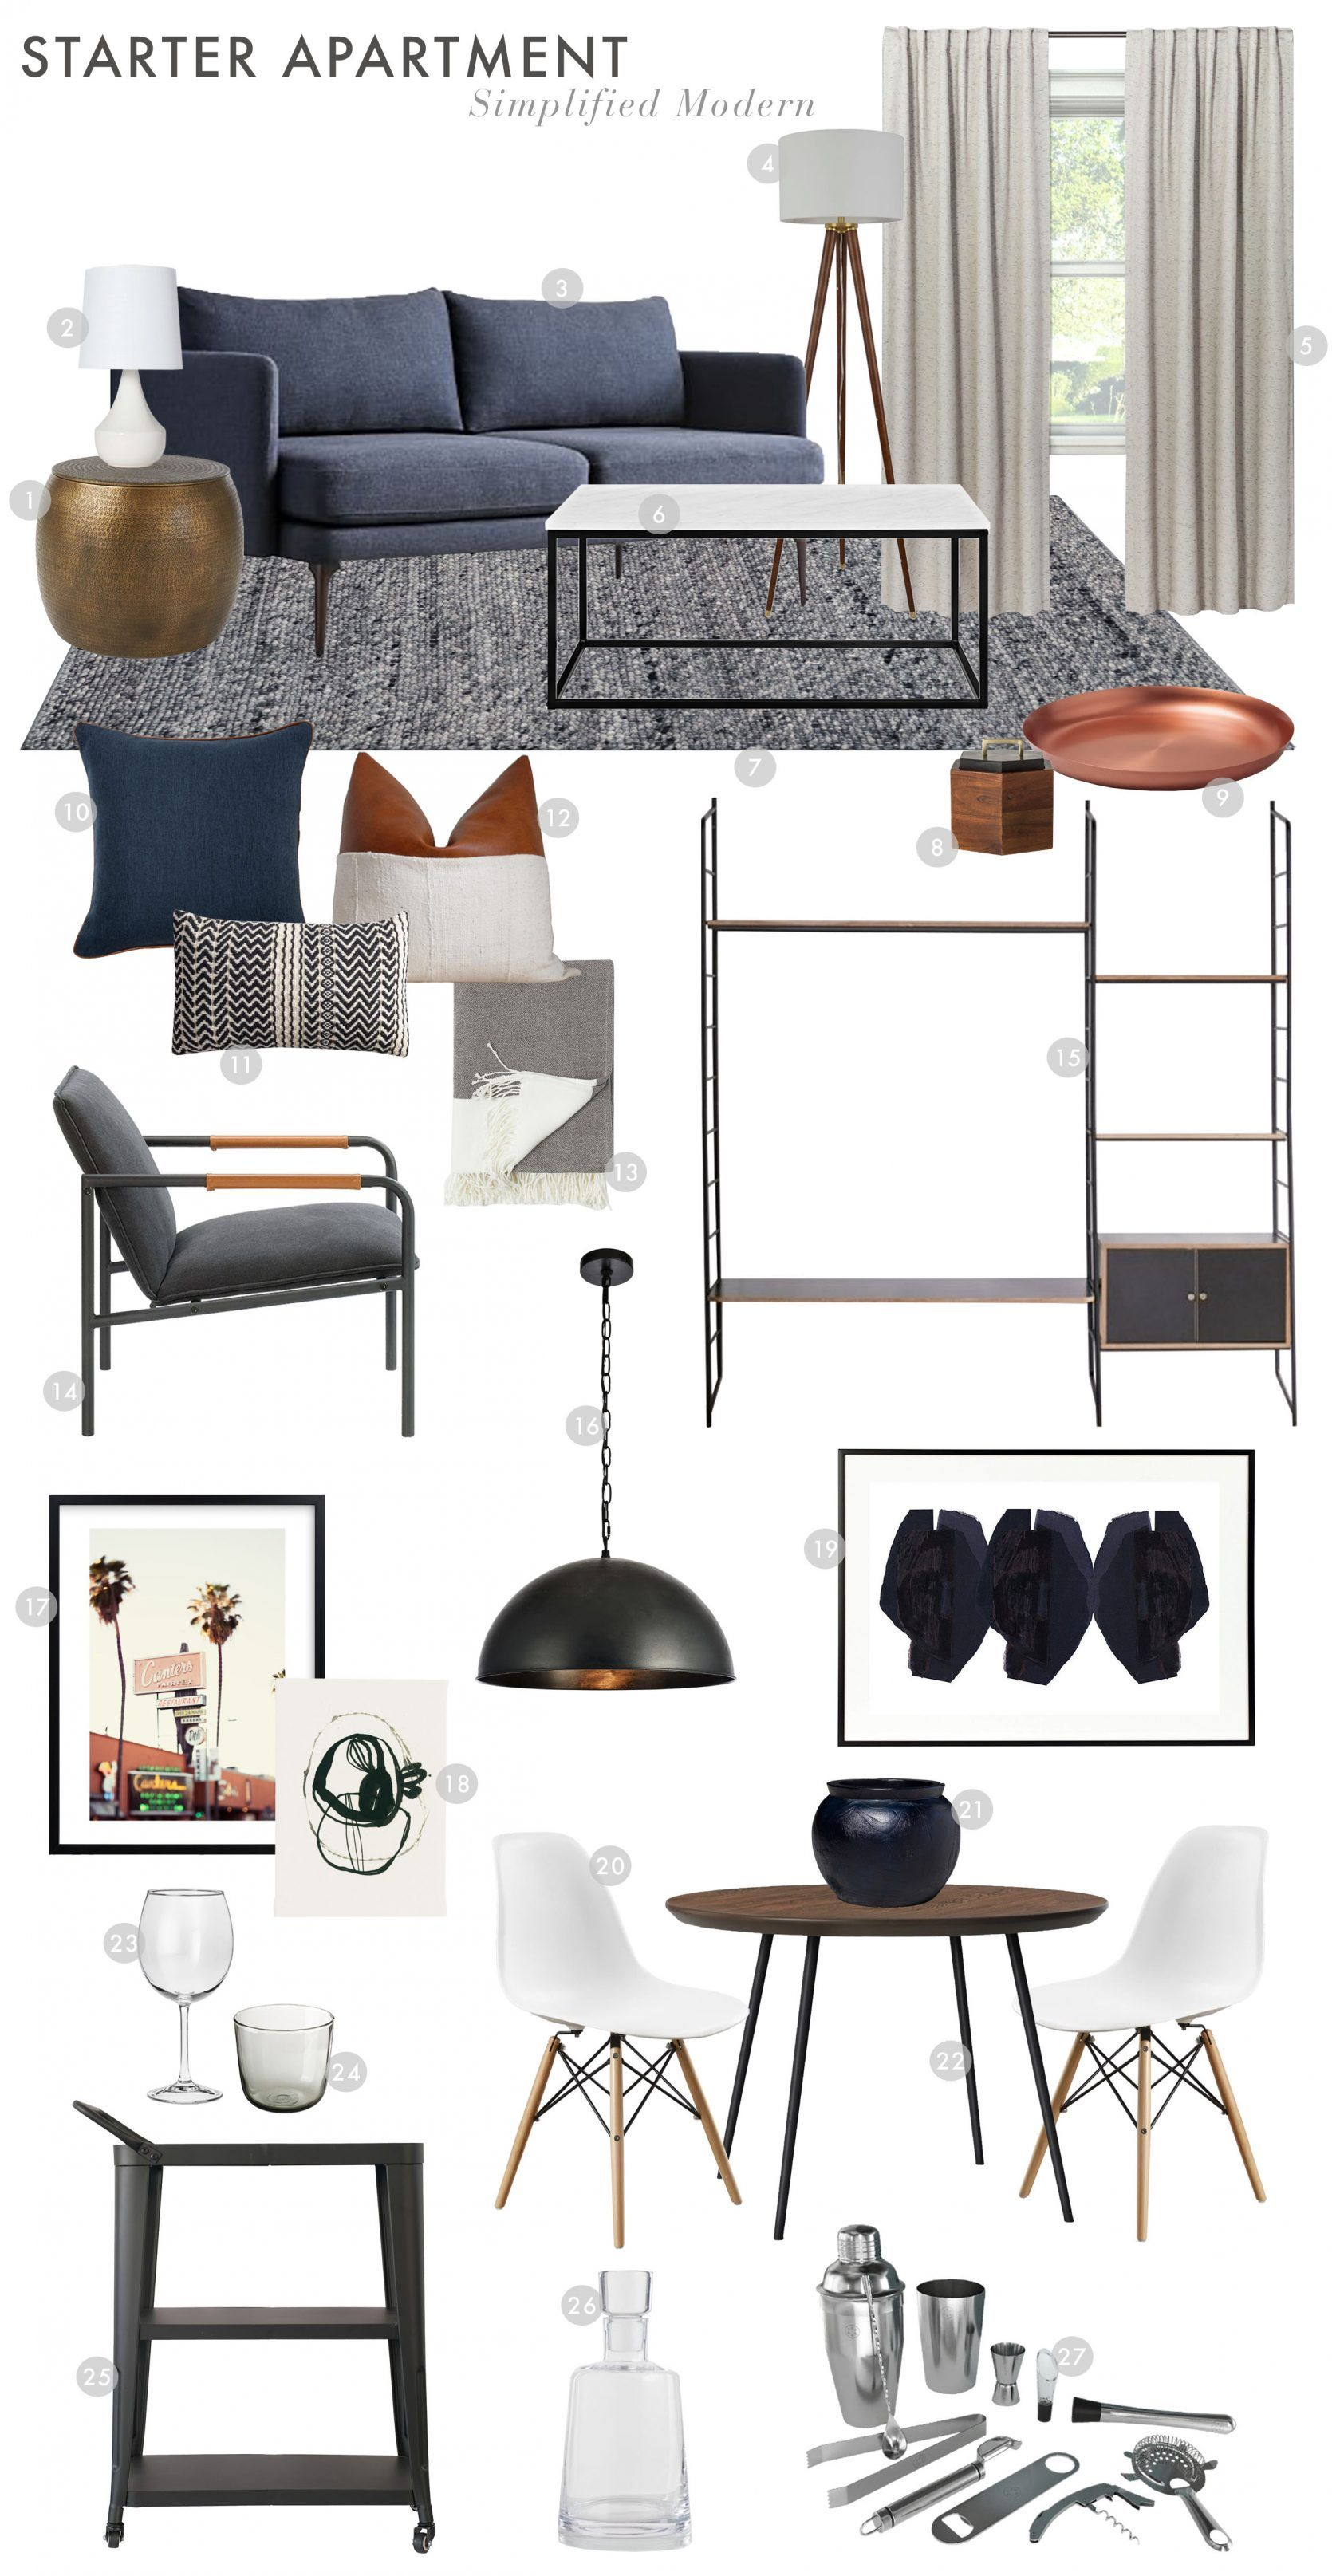 How To Design Your First Apartment On A Tight Budget Apartment Decorating On A Budget Trendy Home Decor Home Decor